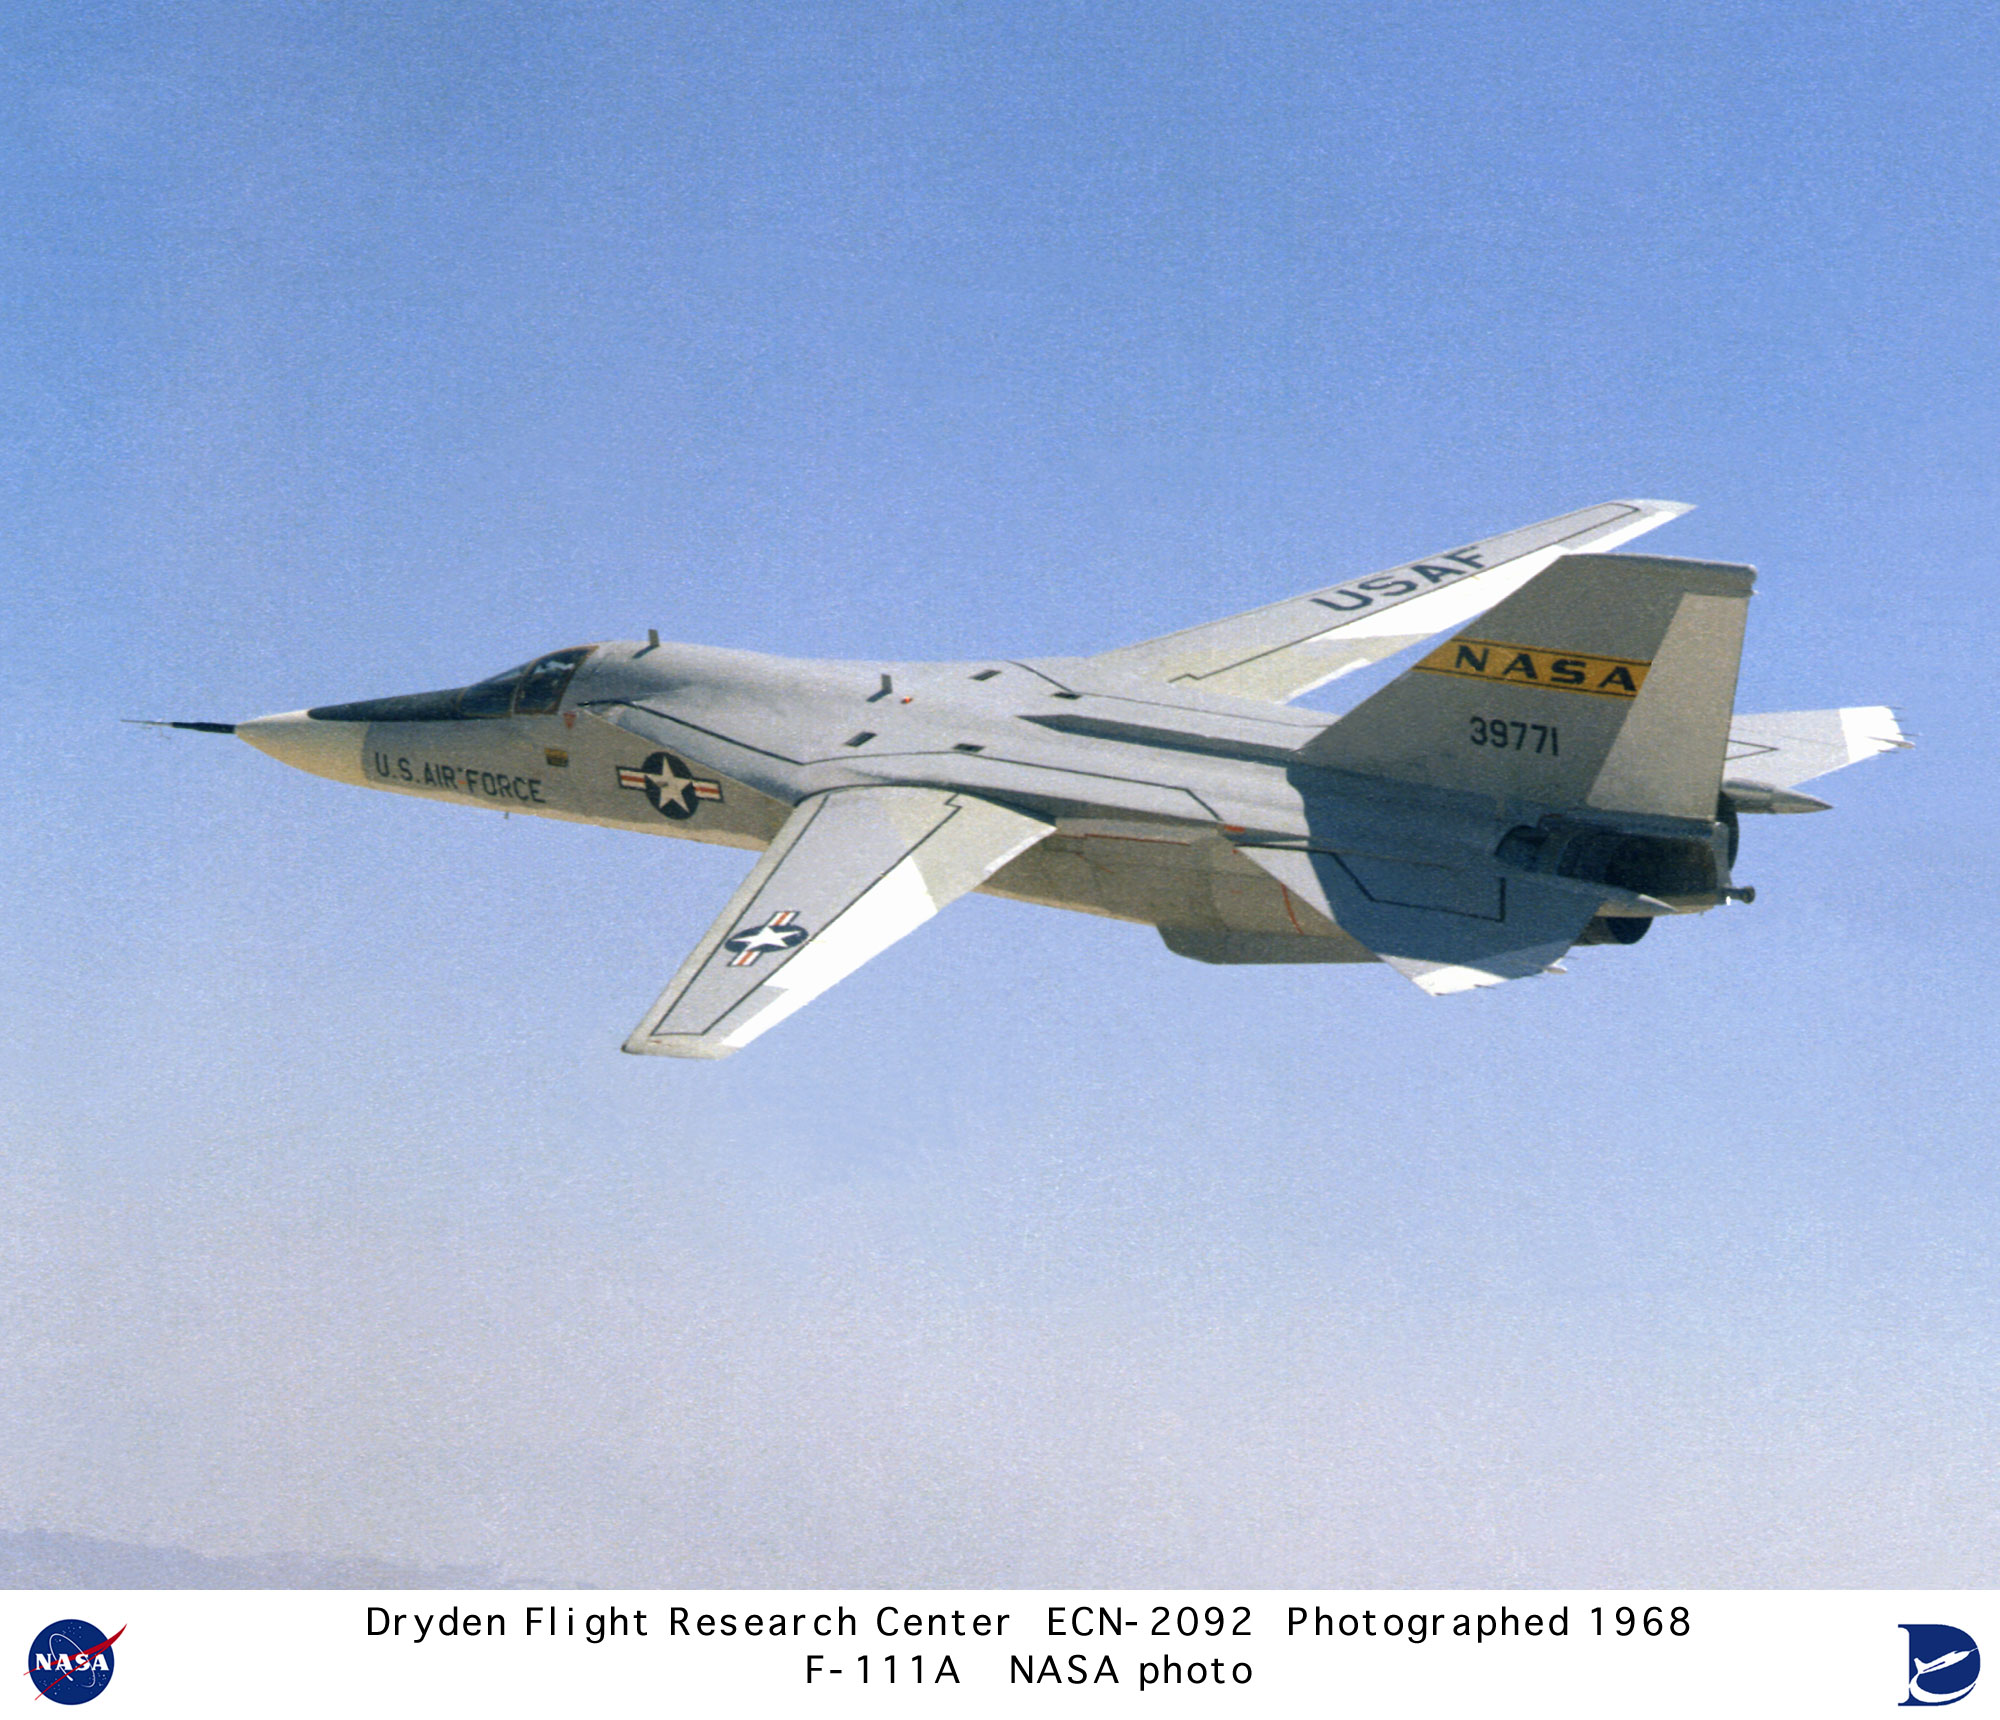 F-111A ECN-2092: F-111A in flight